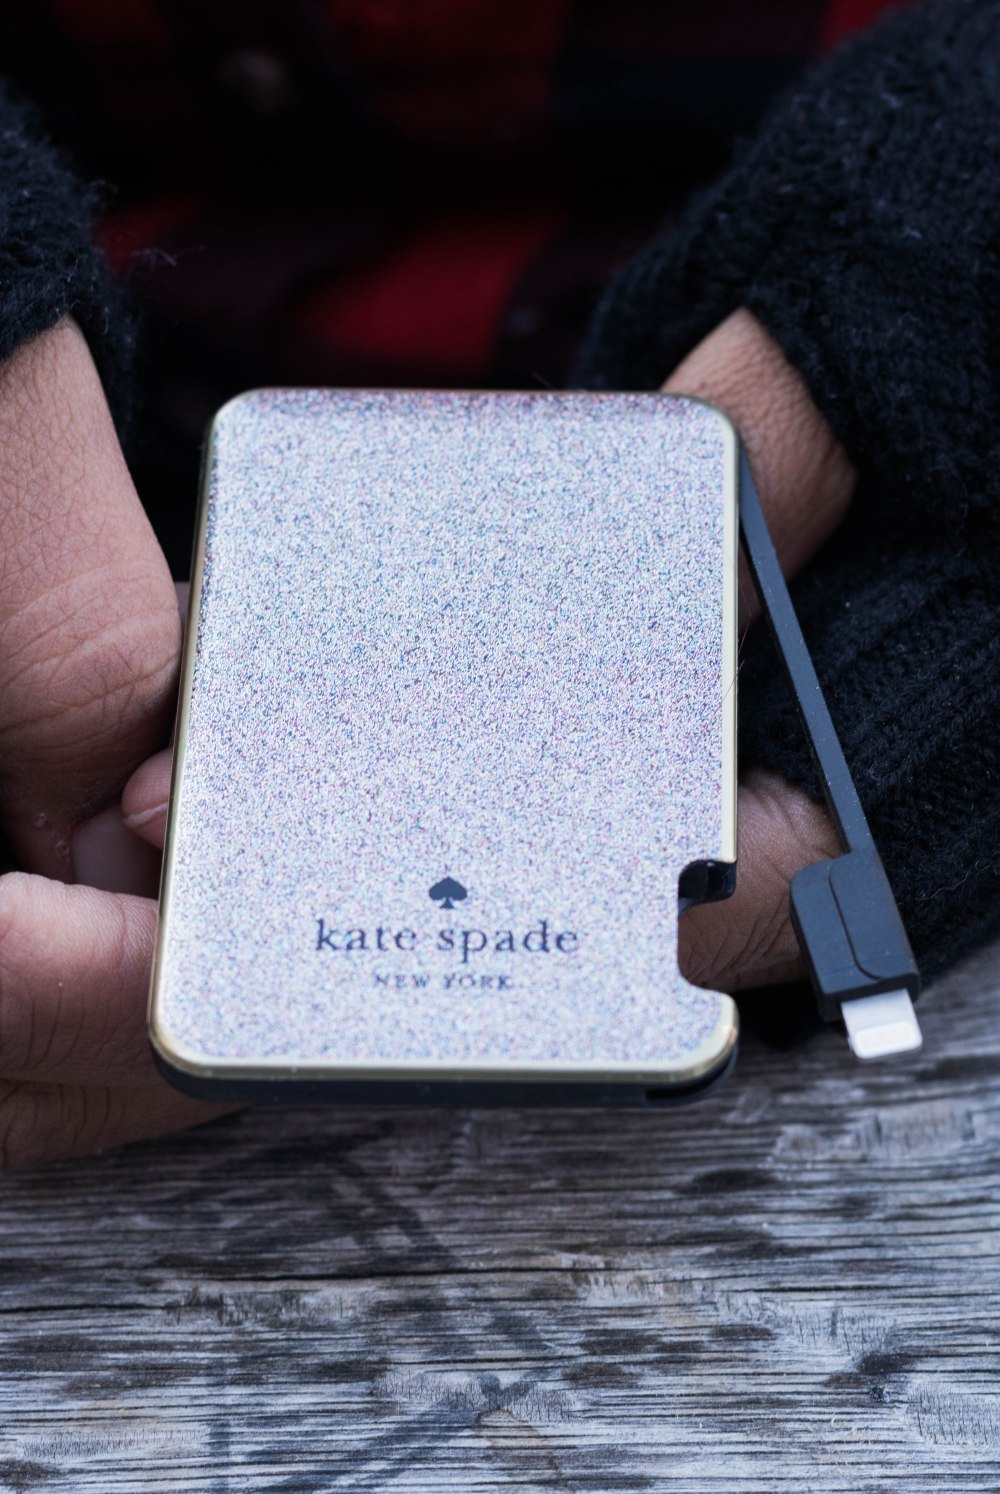 kate spade devices, kate spade tribute, kate spade quotes, verizon, tech tuesday, women in tech, people of color in tech,